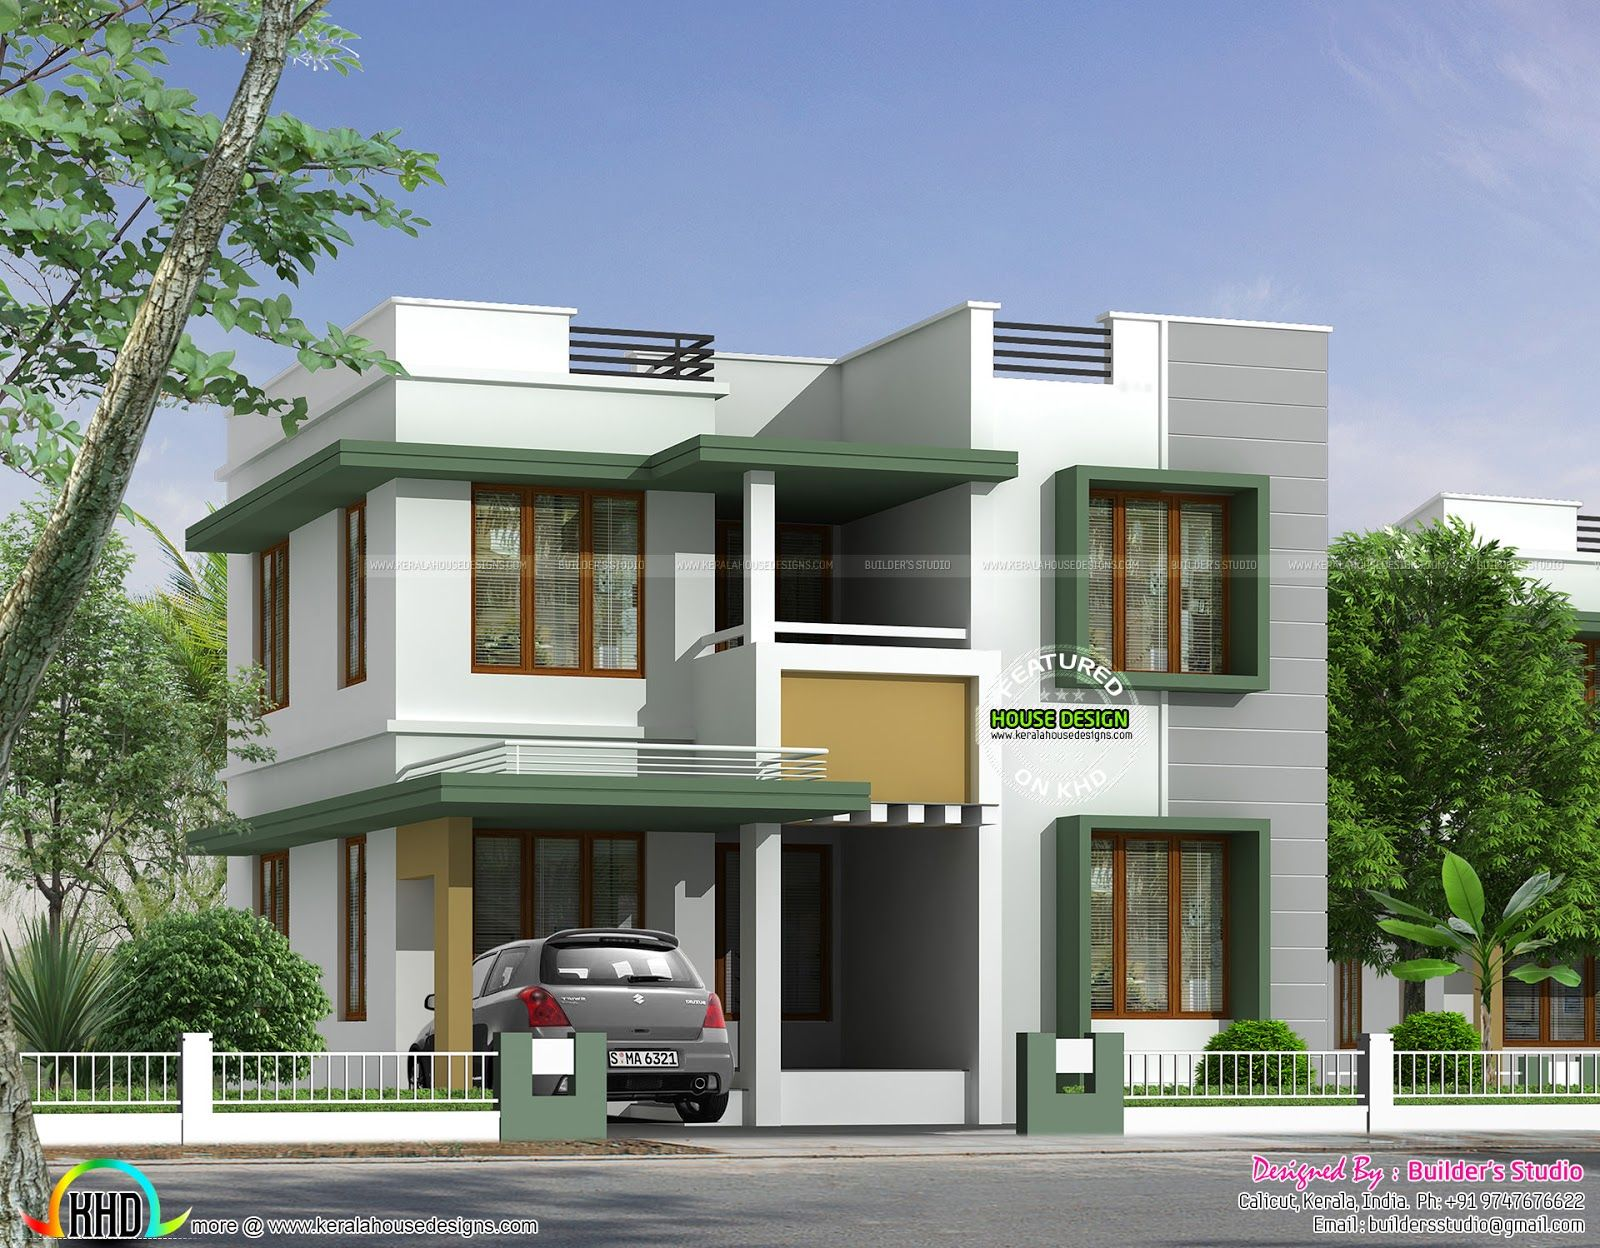 House Designs further 1400 Sq Ft House